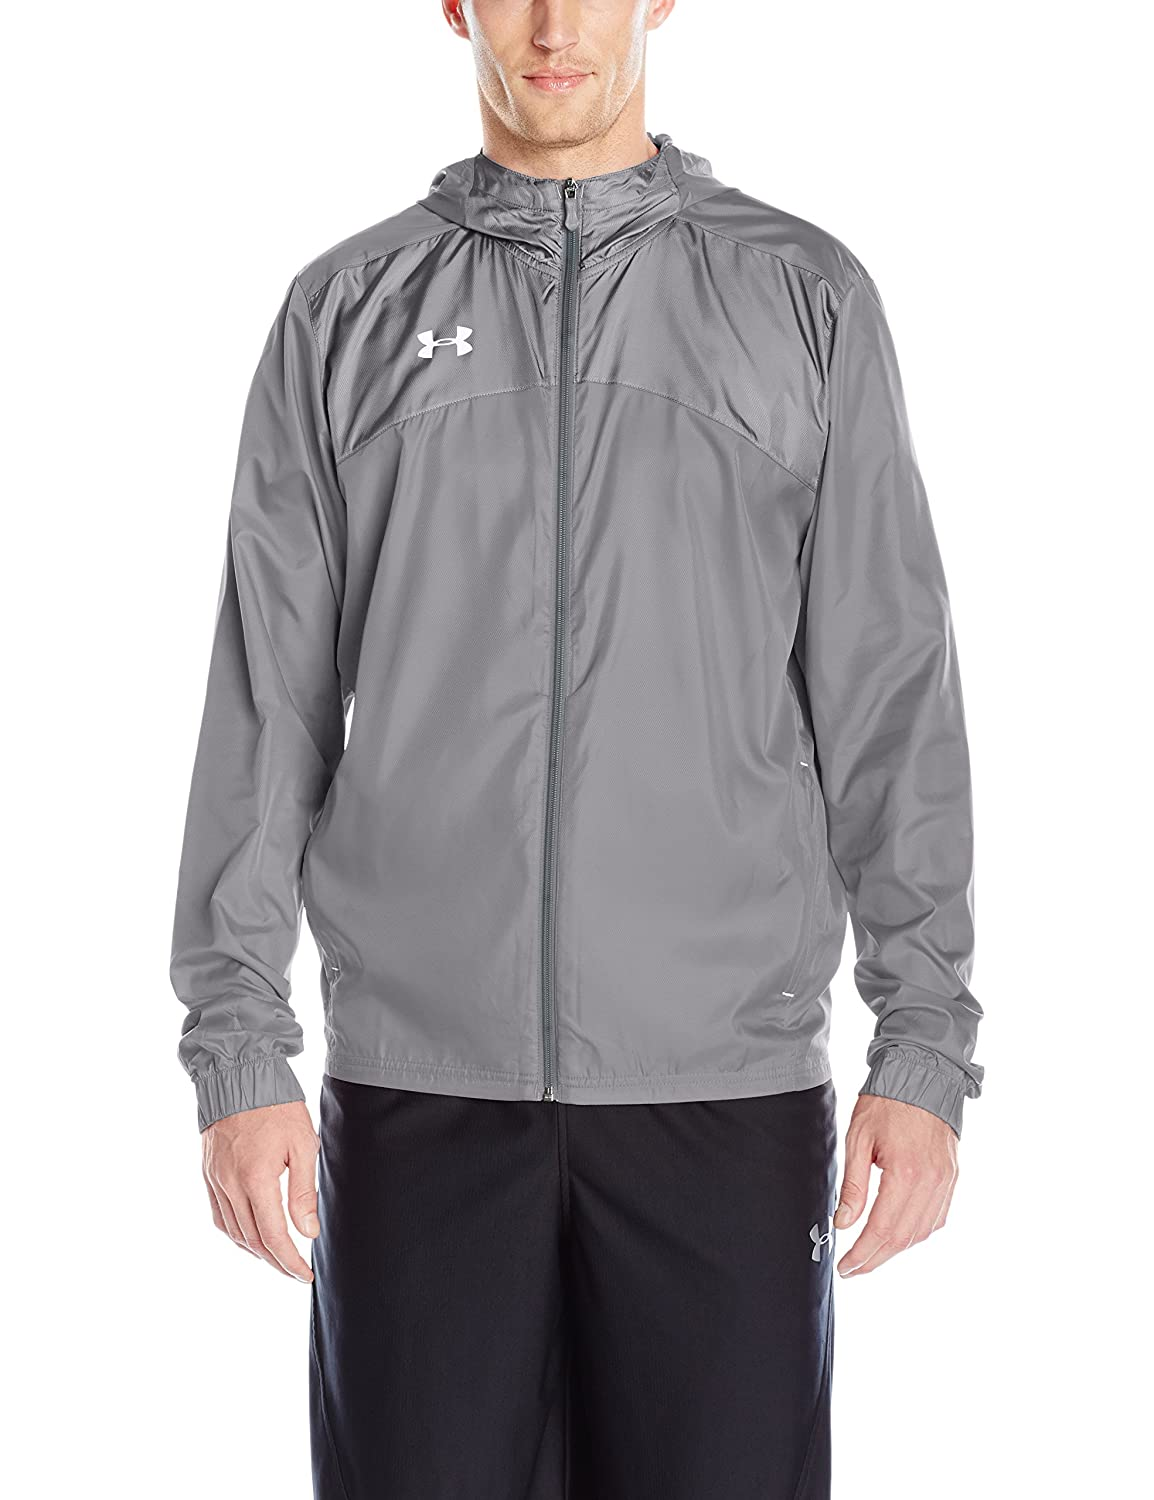 Under Armour Herren Fußball Jacke Futbolista Shell